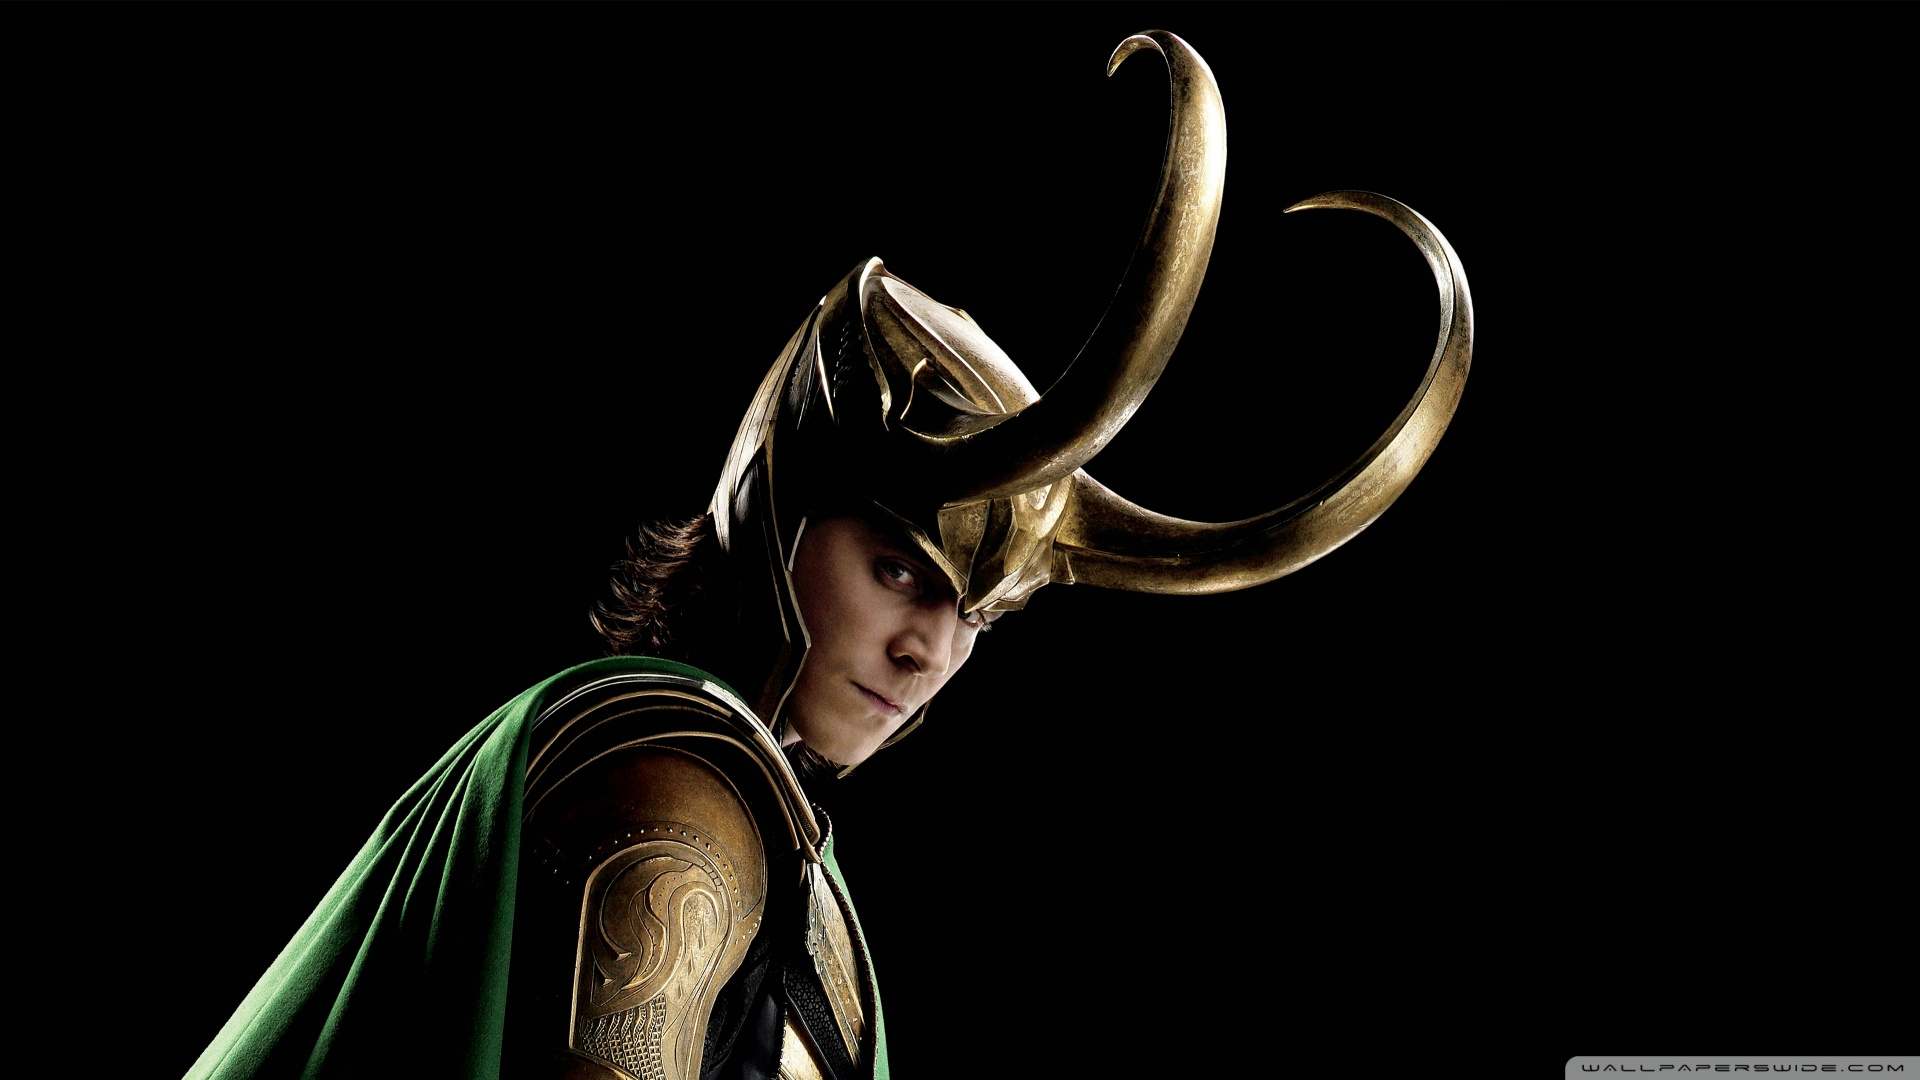 marvel live-action movies images thor dark world hd wallpaper and